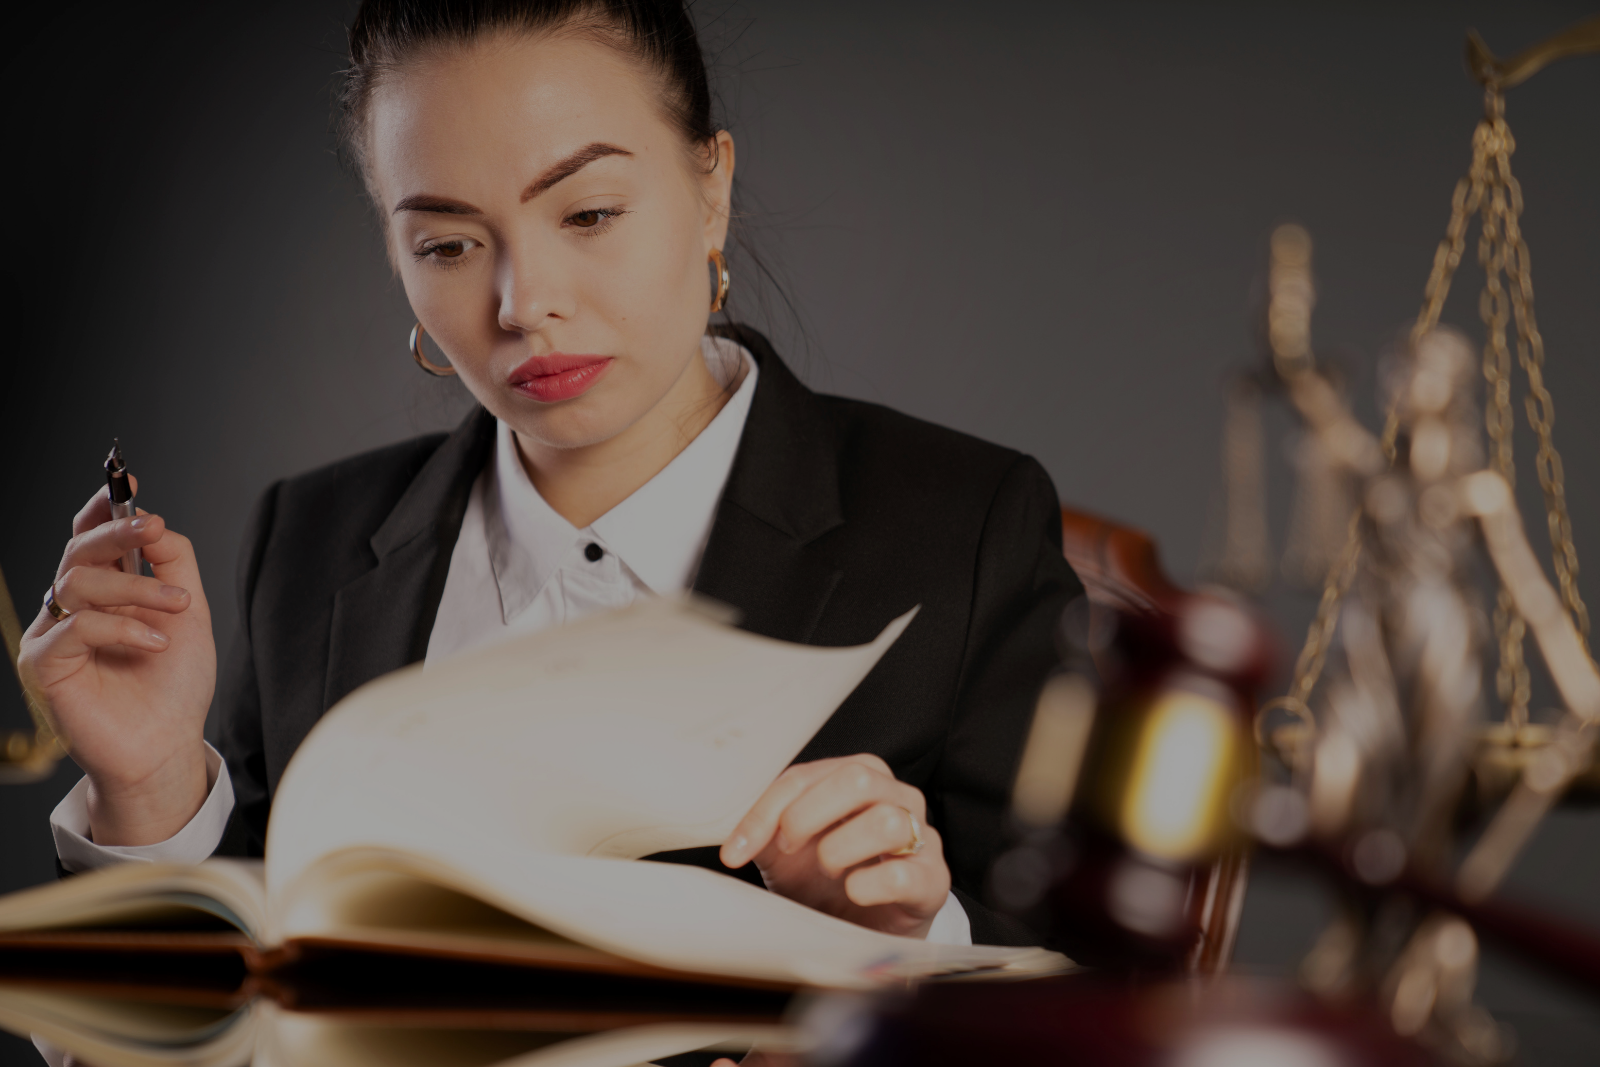 will executor, executor, executor duties, estate planning, ivy law group, wills and estate lawyers, sydney wills lawyers, probate, family provision claims